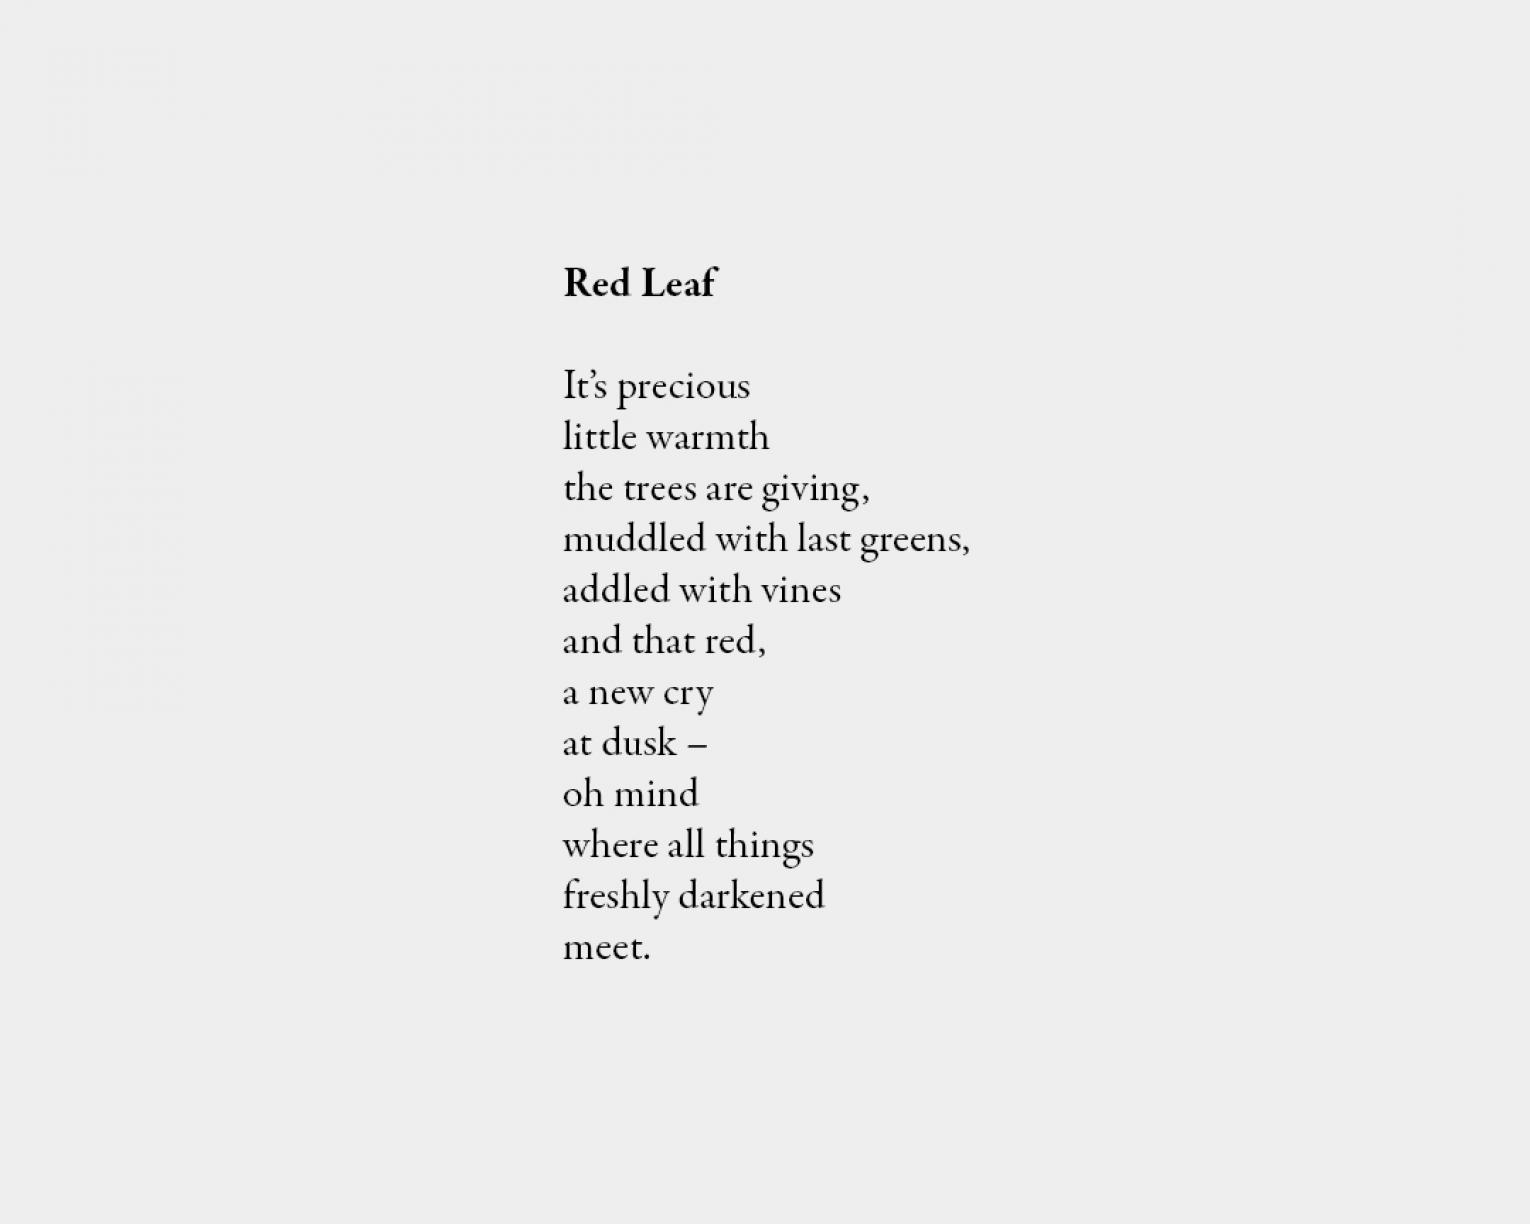 Poem: Red Leaf It's precious little warmth the trees are giving, muddled with last greens, addled with vines and that red, a new cry at dusk – oh mind where all things freshly darkened meet.